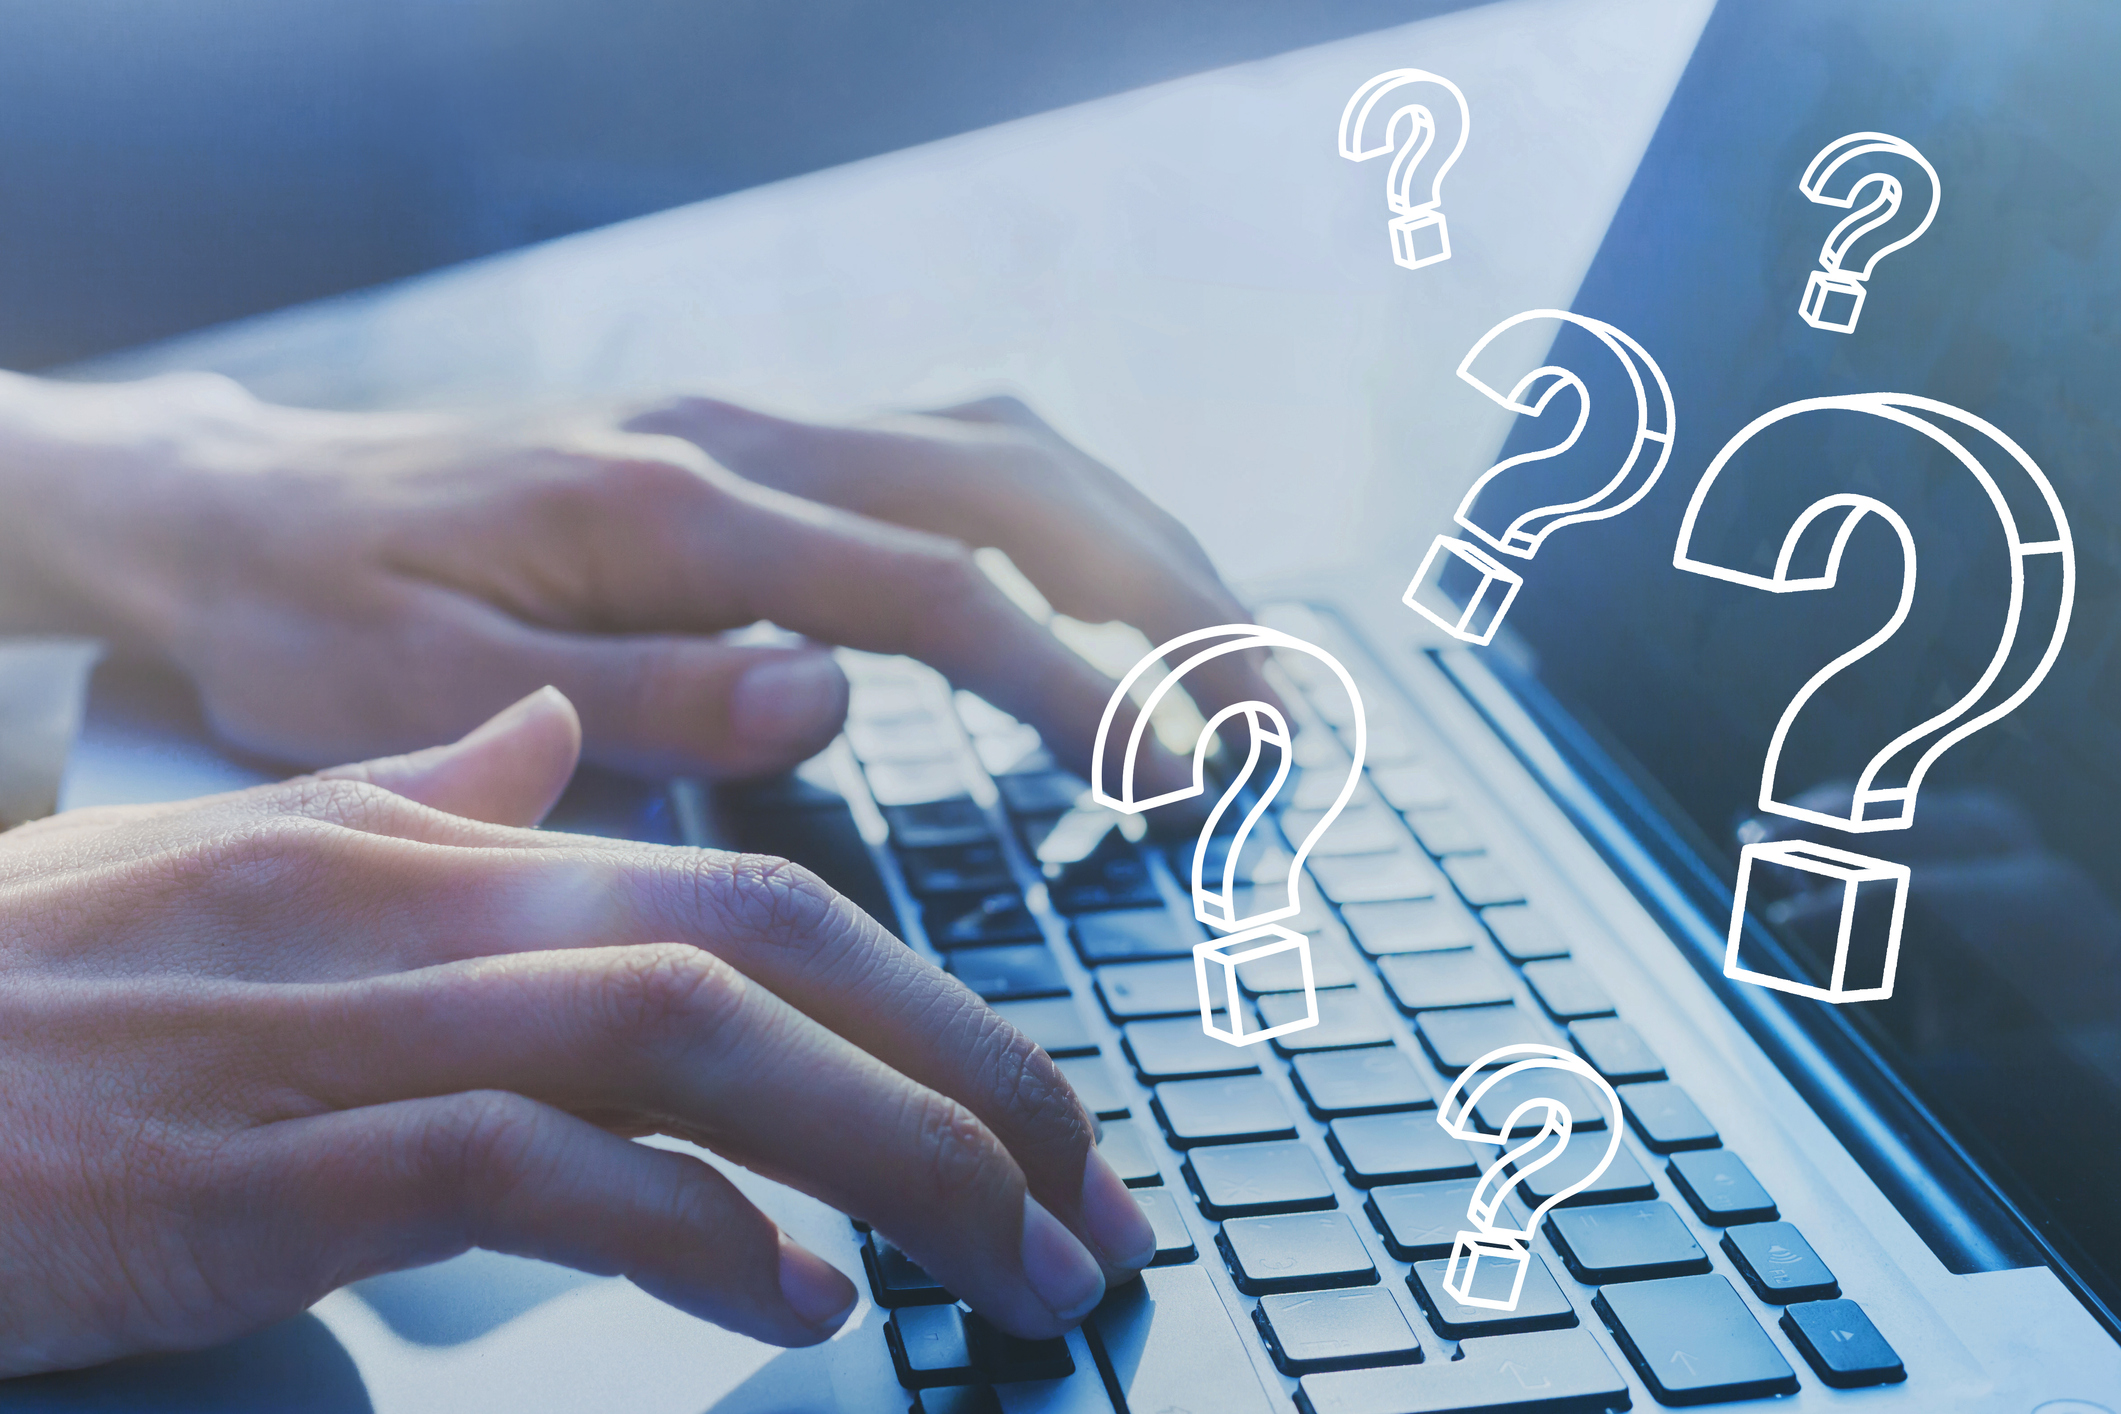 FAQ, ask question online, what where when how and why, search information on internet